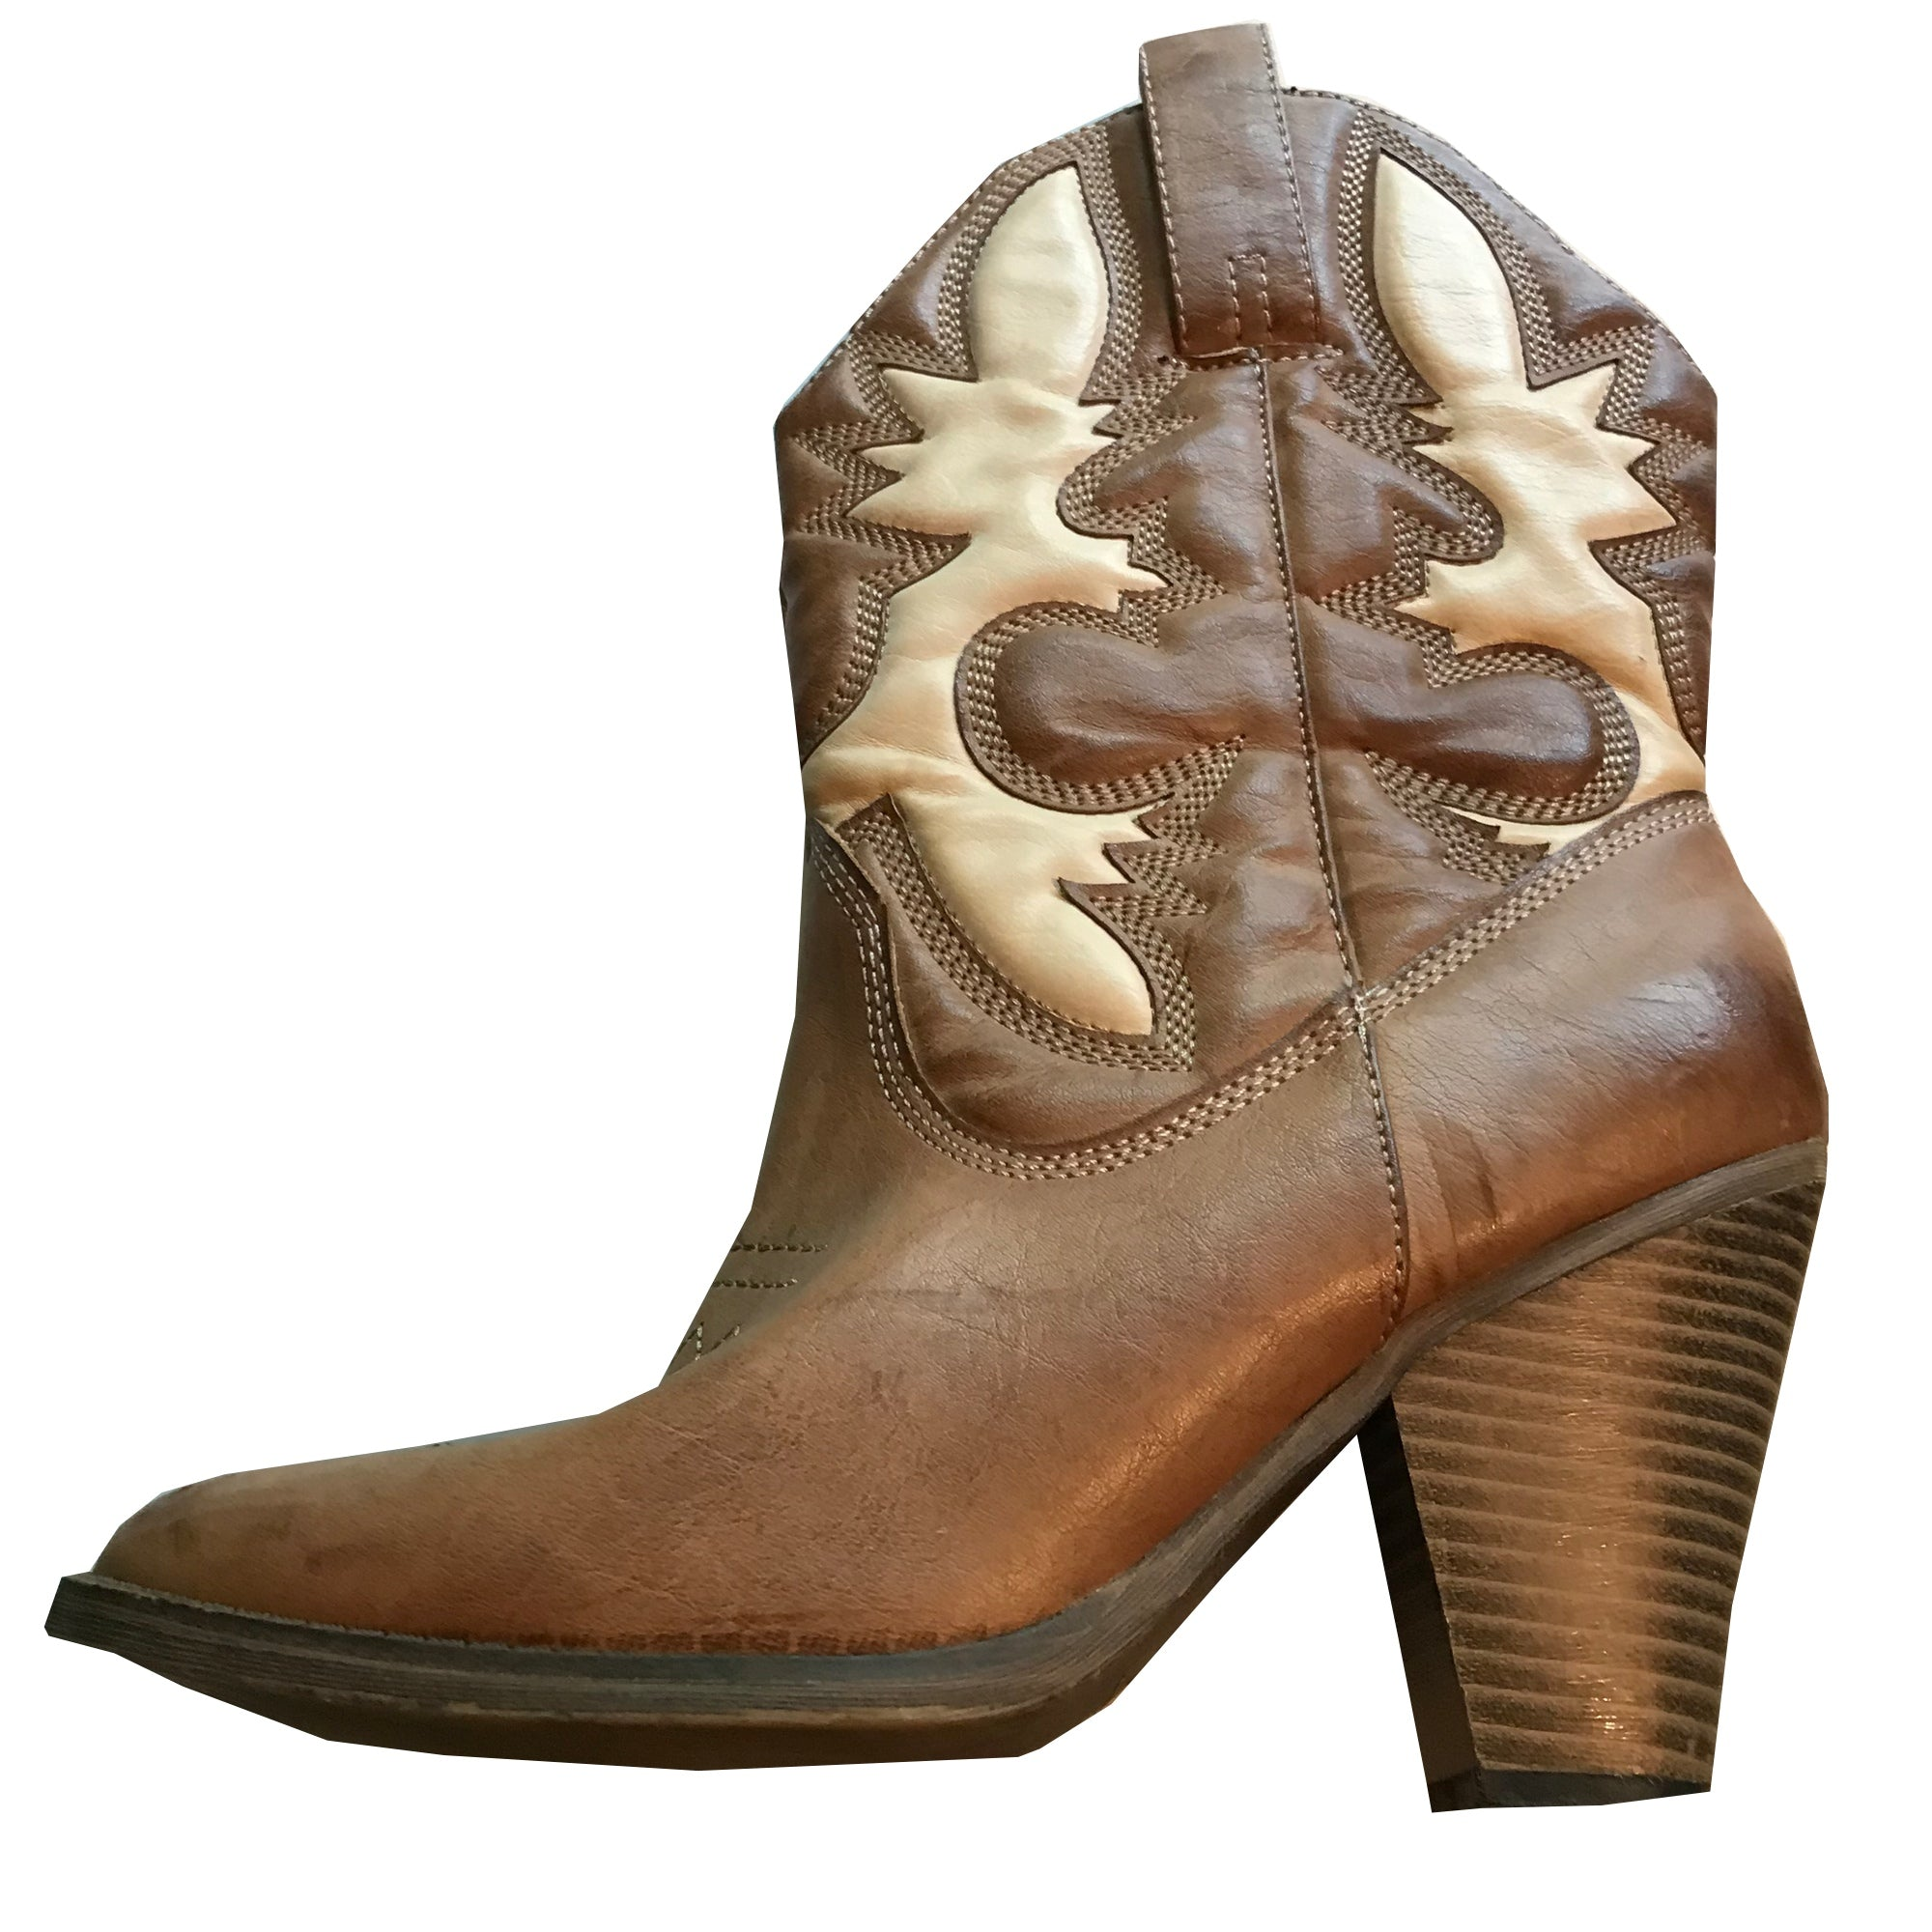 High Heeled Faux Leather Western Style Cowgirl Boots circa 1980s 8.5